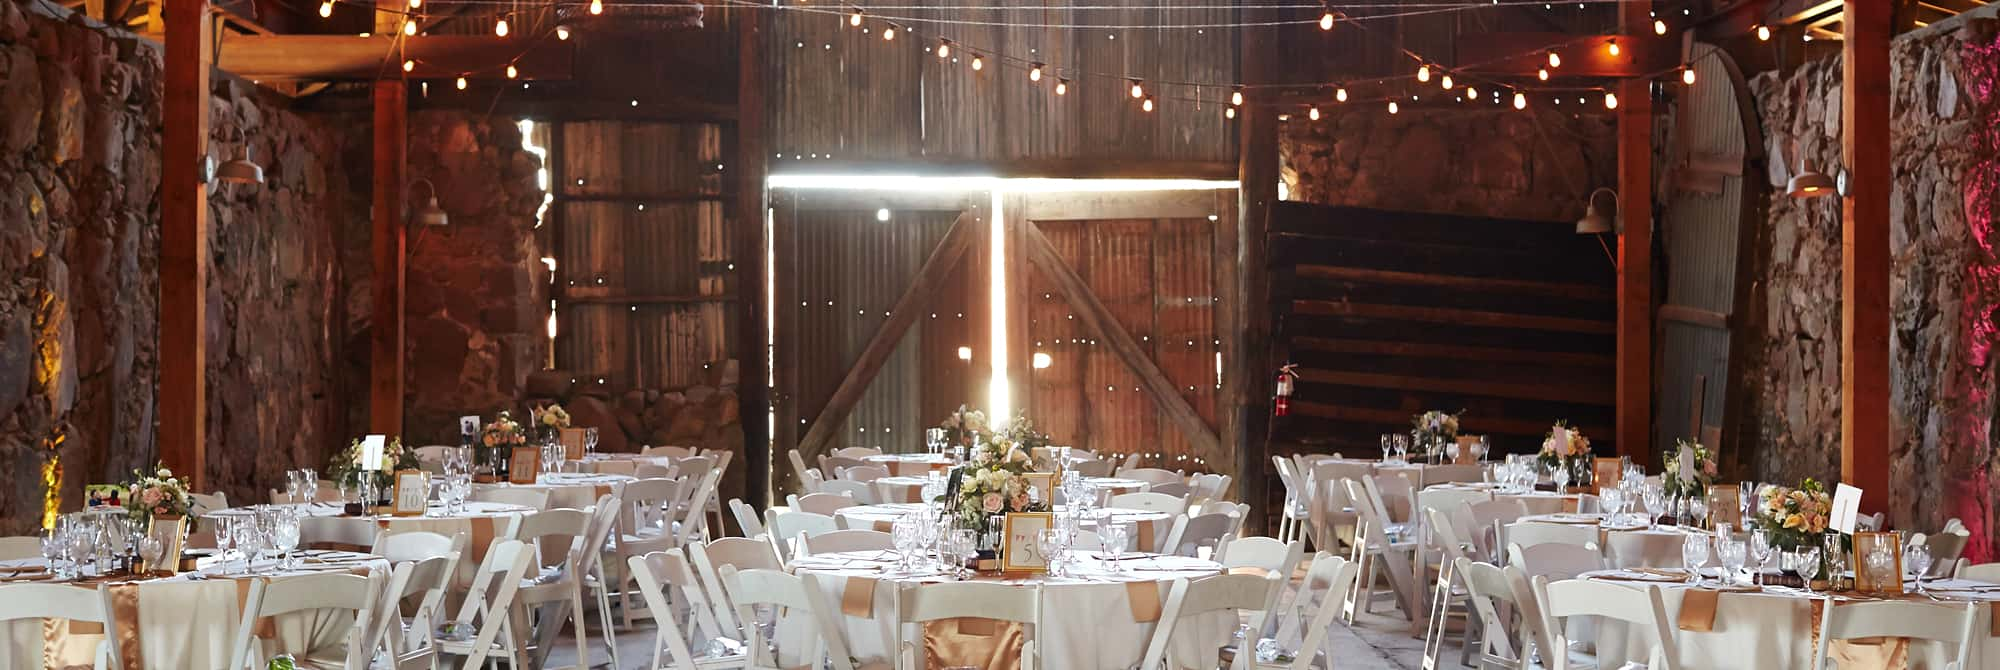 Taste Catering Venues Wedding Event in Classic Barn Farmhouse